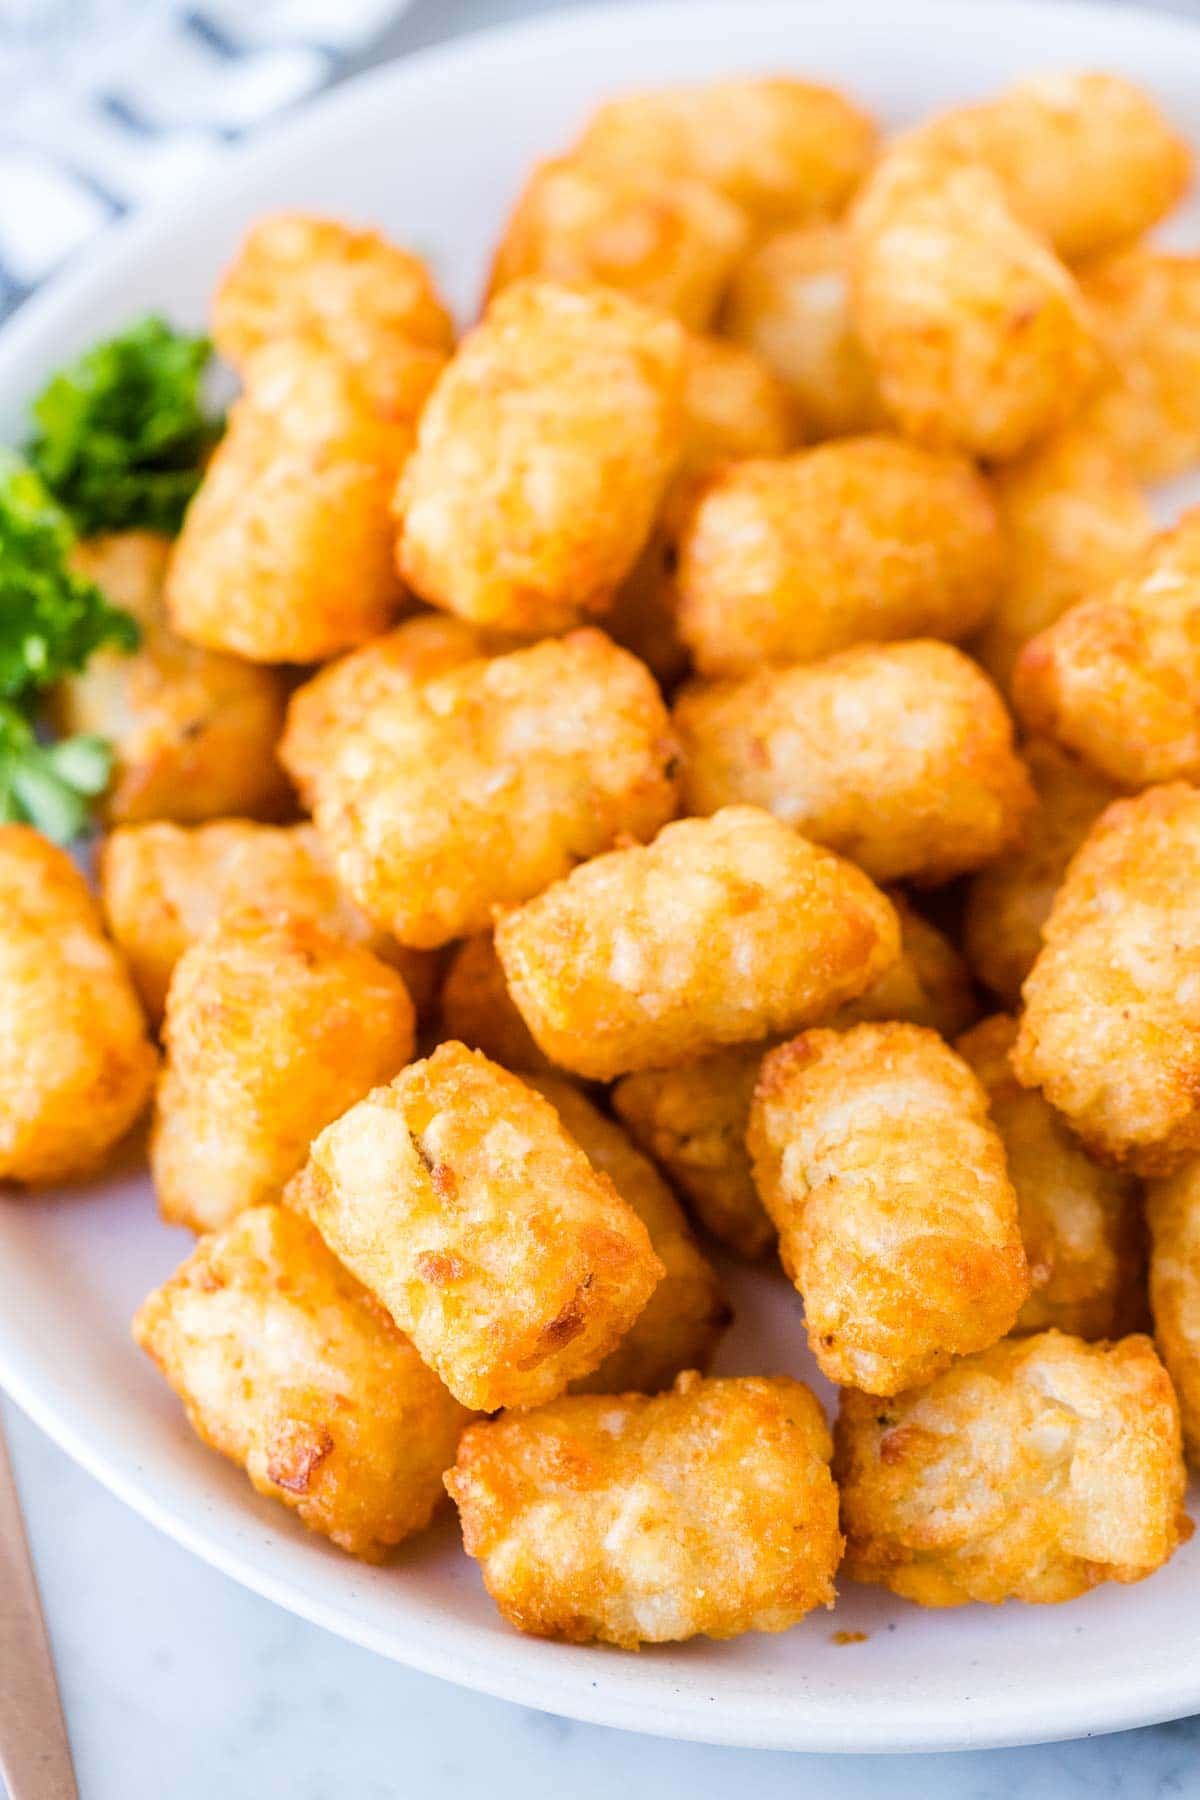 A close up of a plate of crispy tater tots